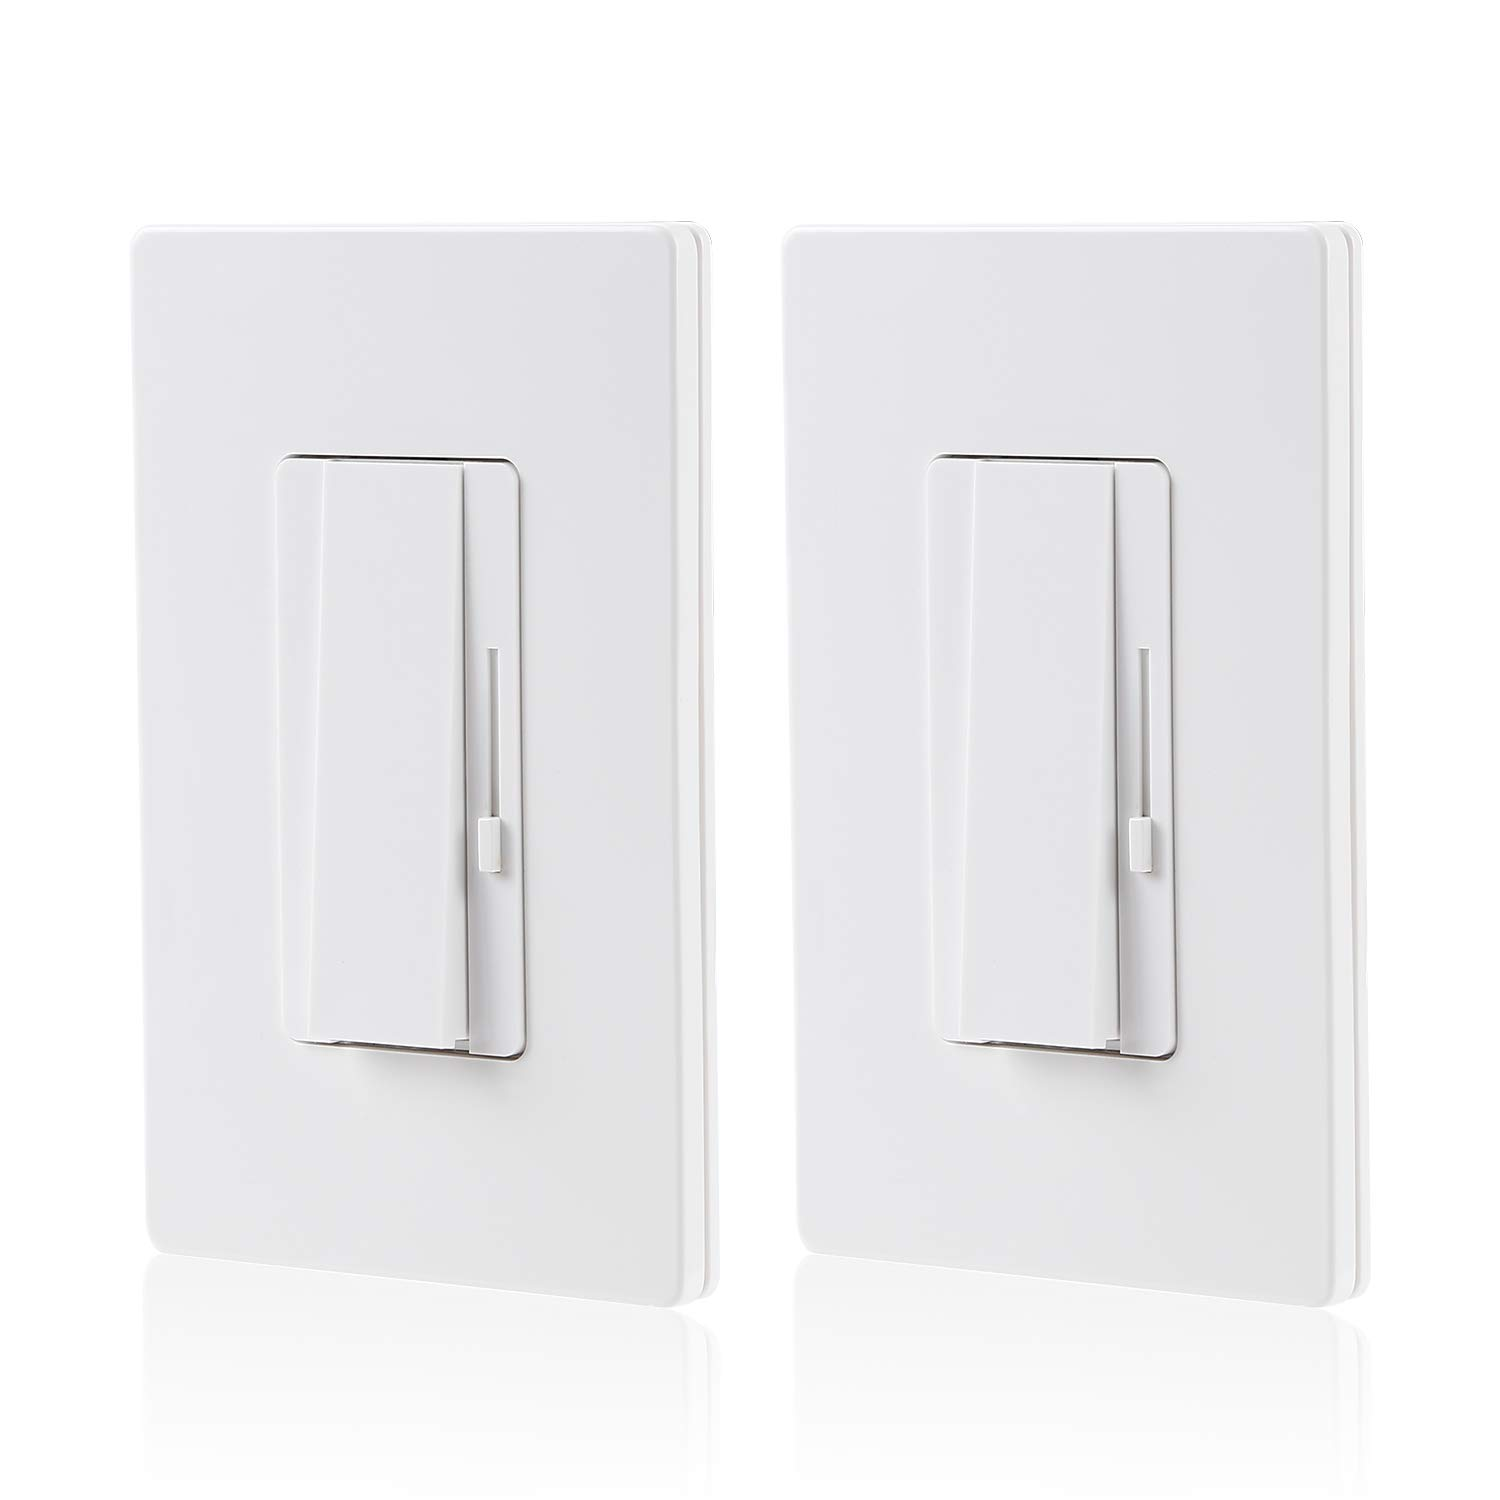 2 Pack 3 Way Single Pole Dimmer Switch Suit For 150w Led Cfl 600w Incandescent Halogen Both Applications Available Wall Plate Included